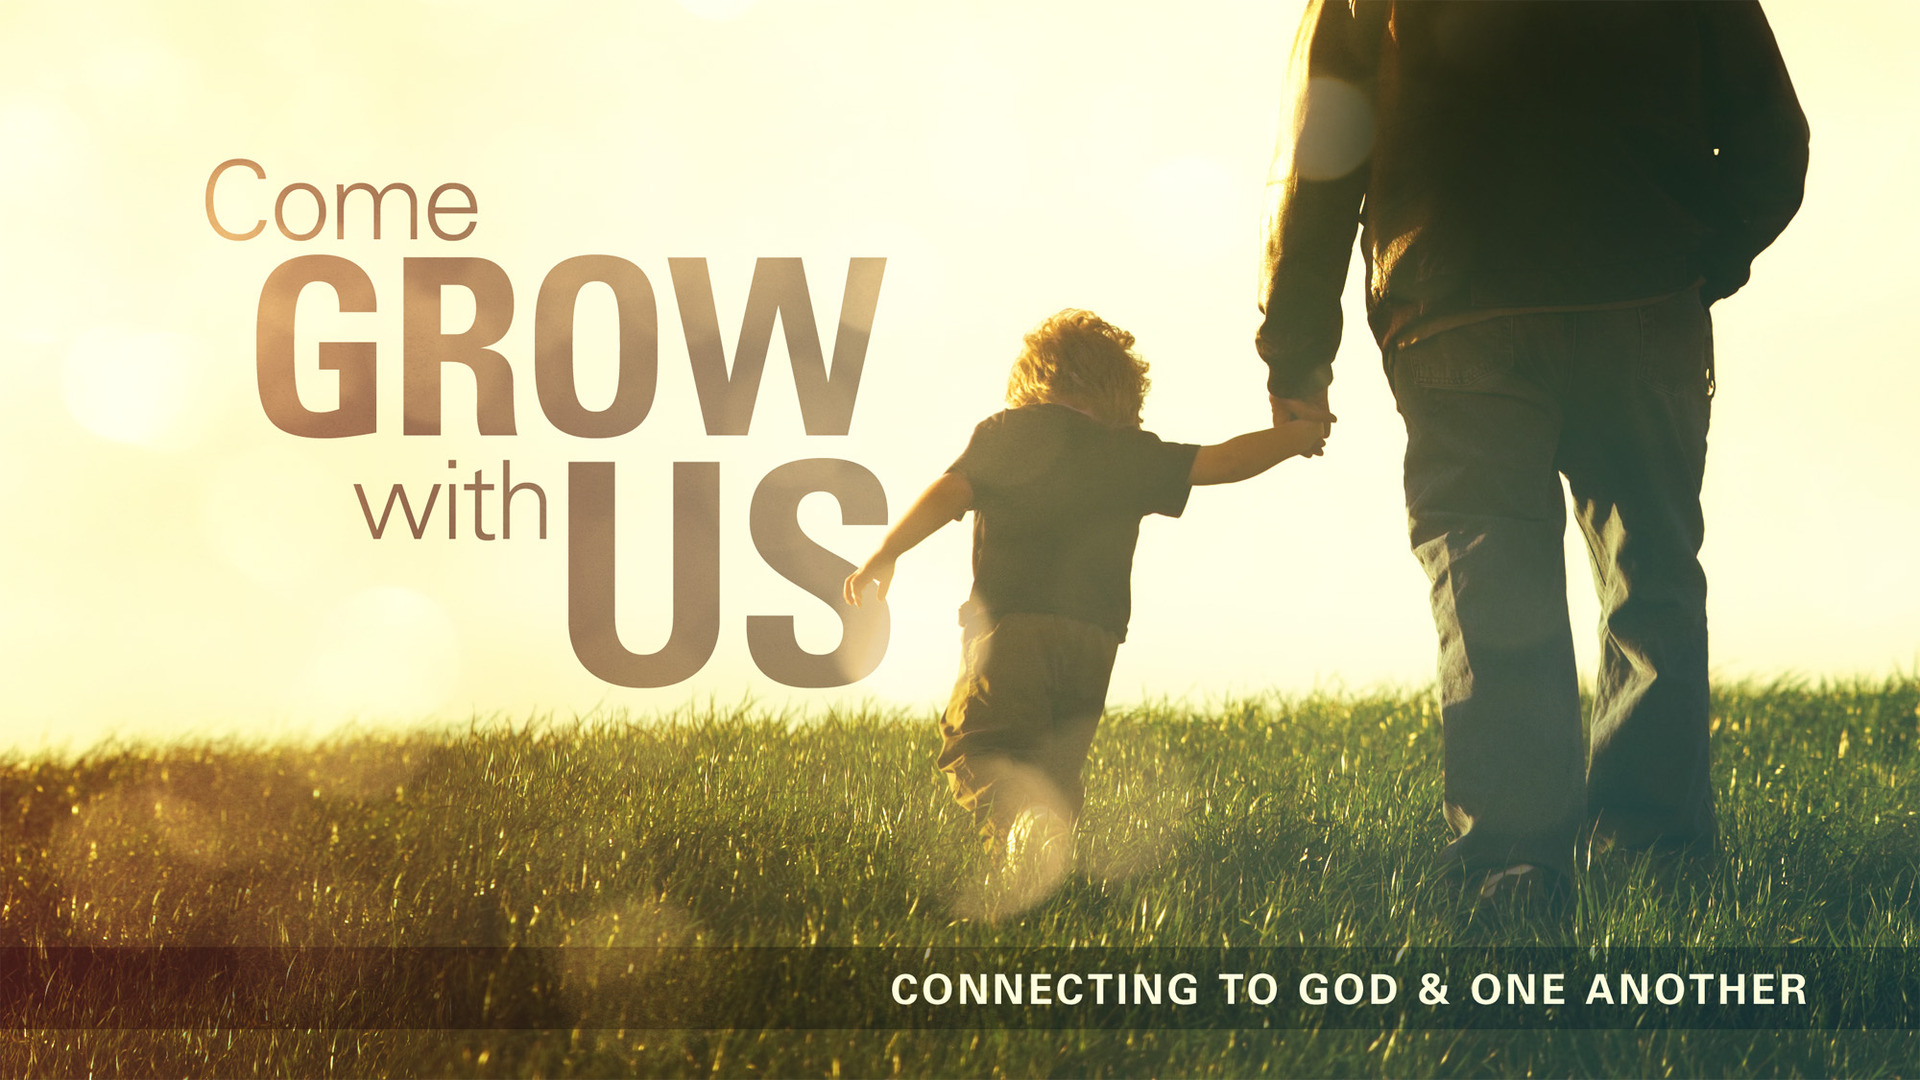 come_grow_with_us-title-1-Wide 16x9.jpg